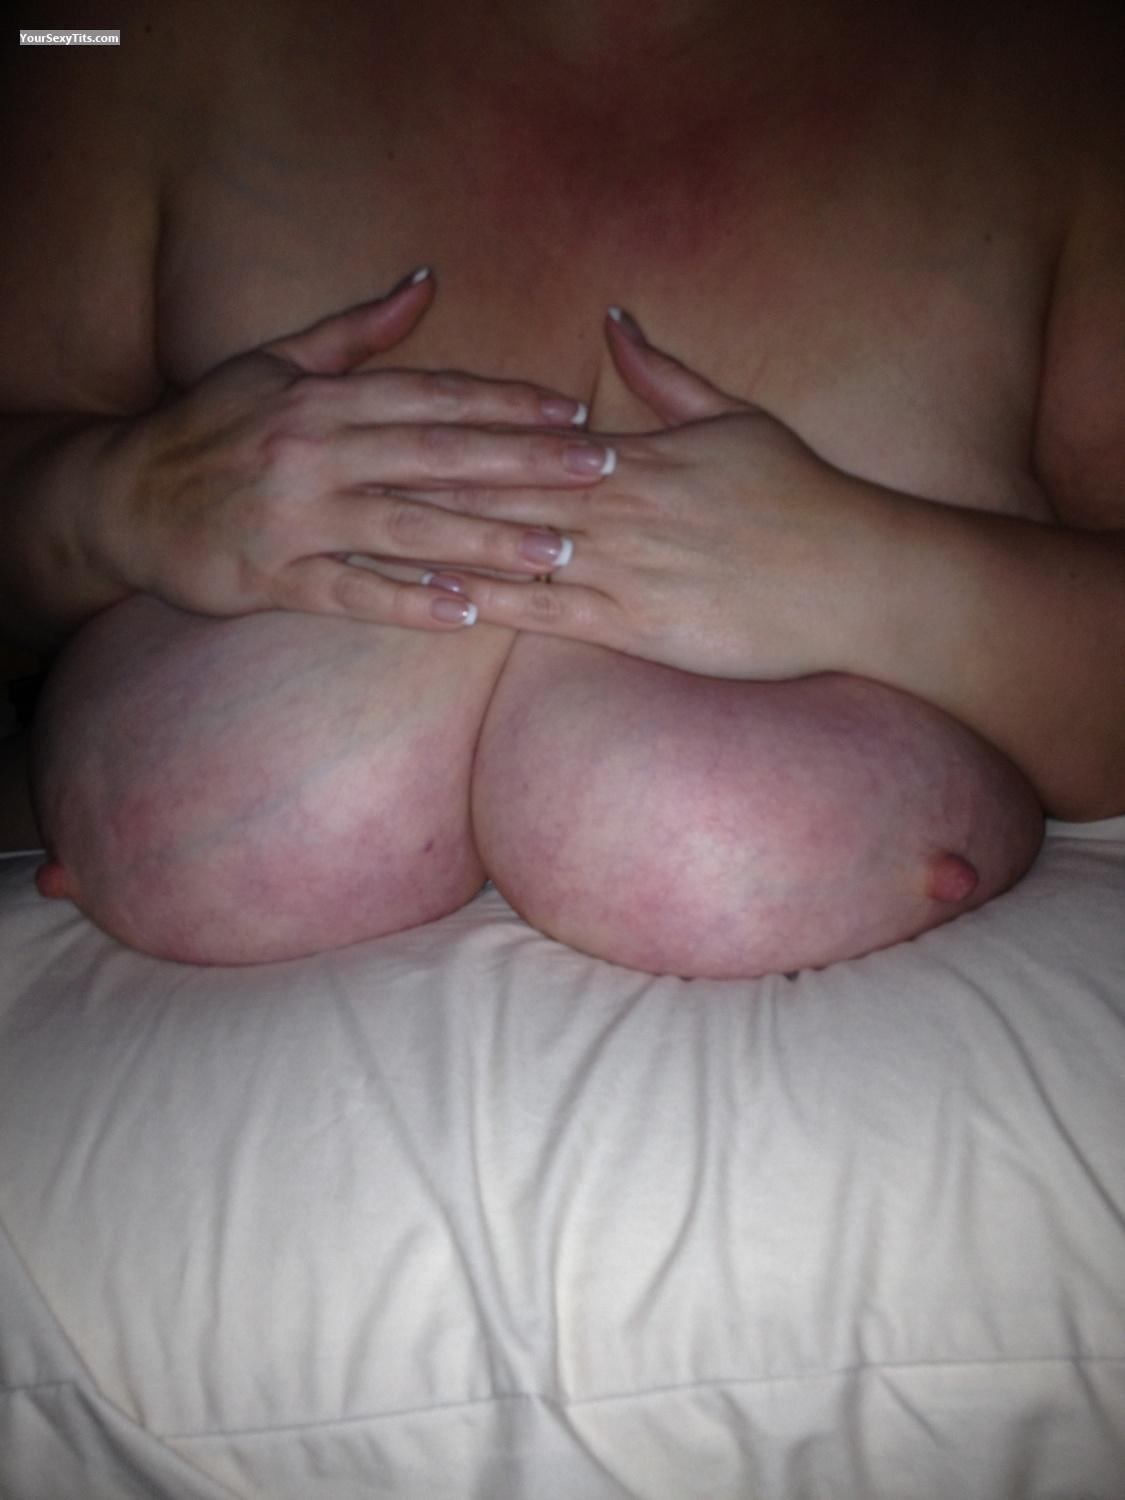 Tit Flash: Extremely Big Tits By IPhone - Djtalons from United Kingdom